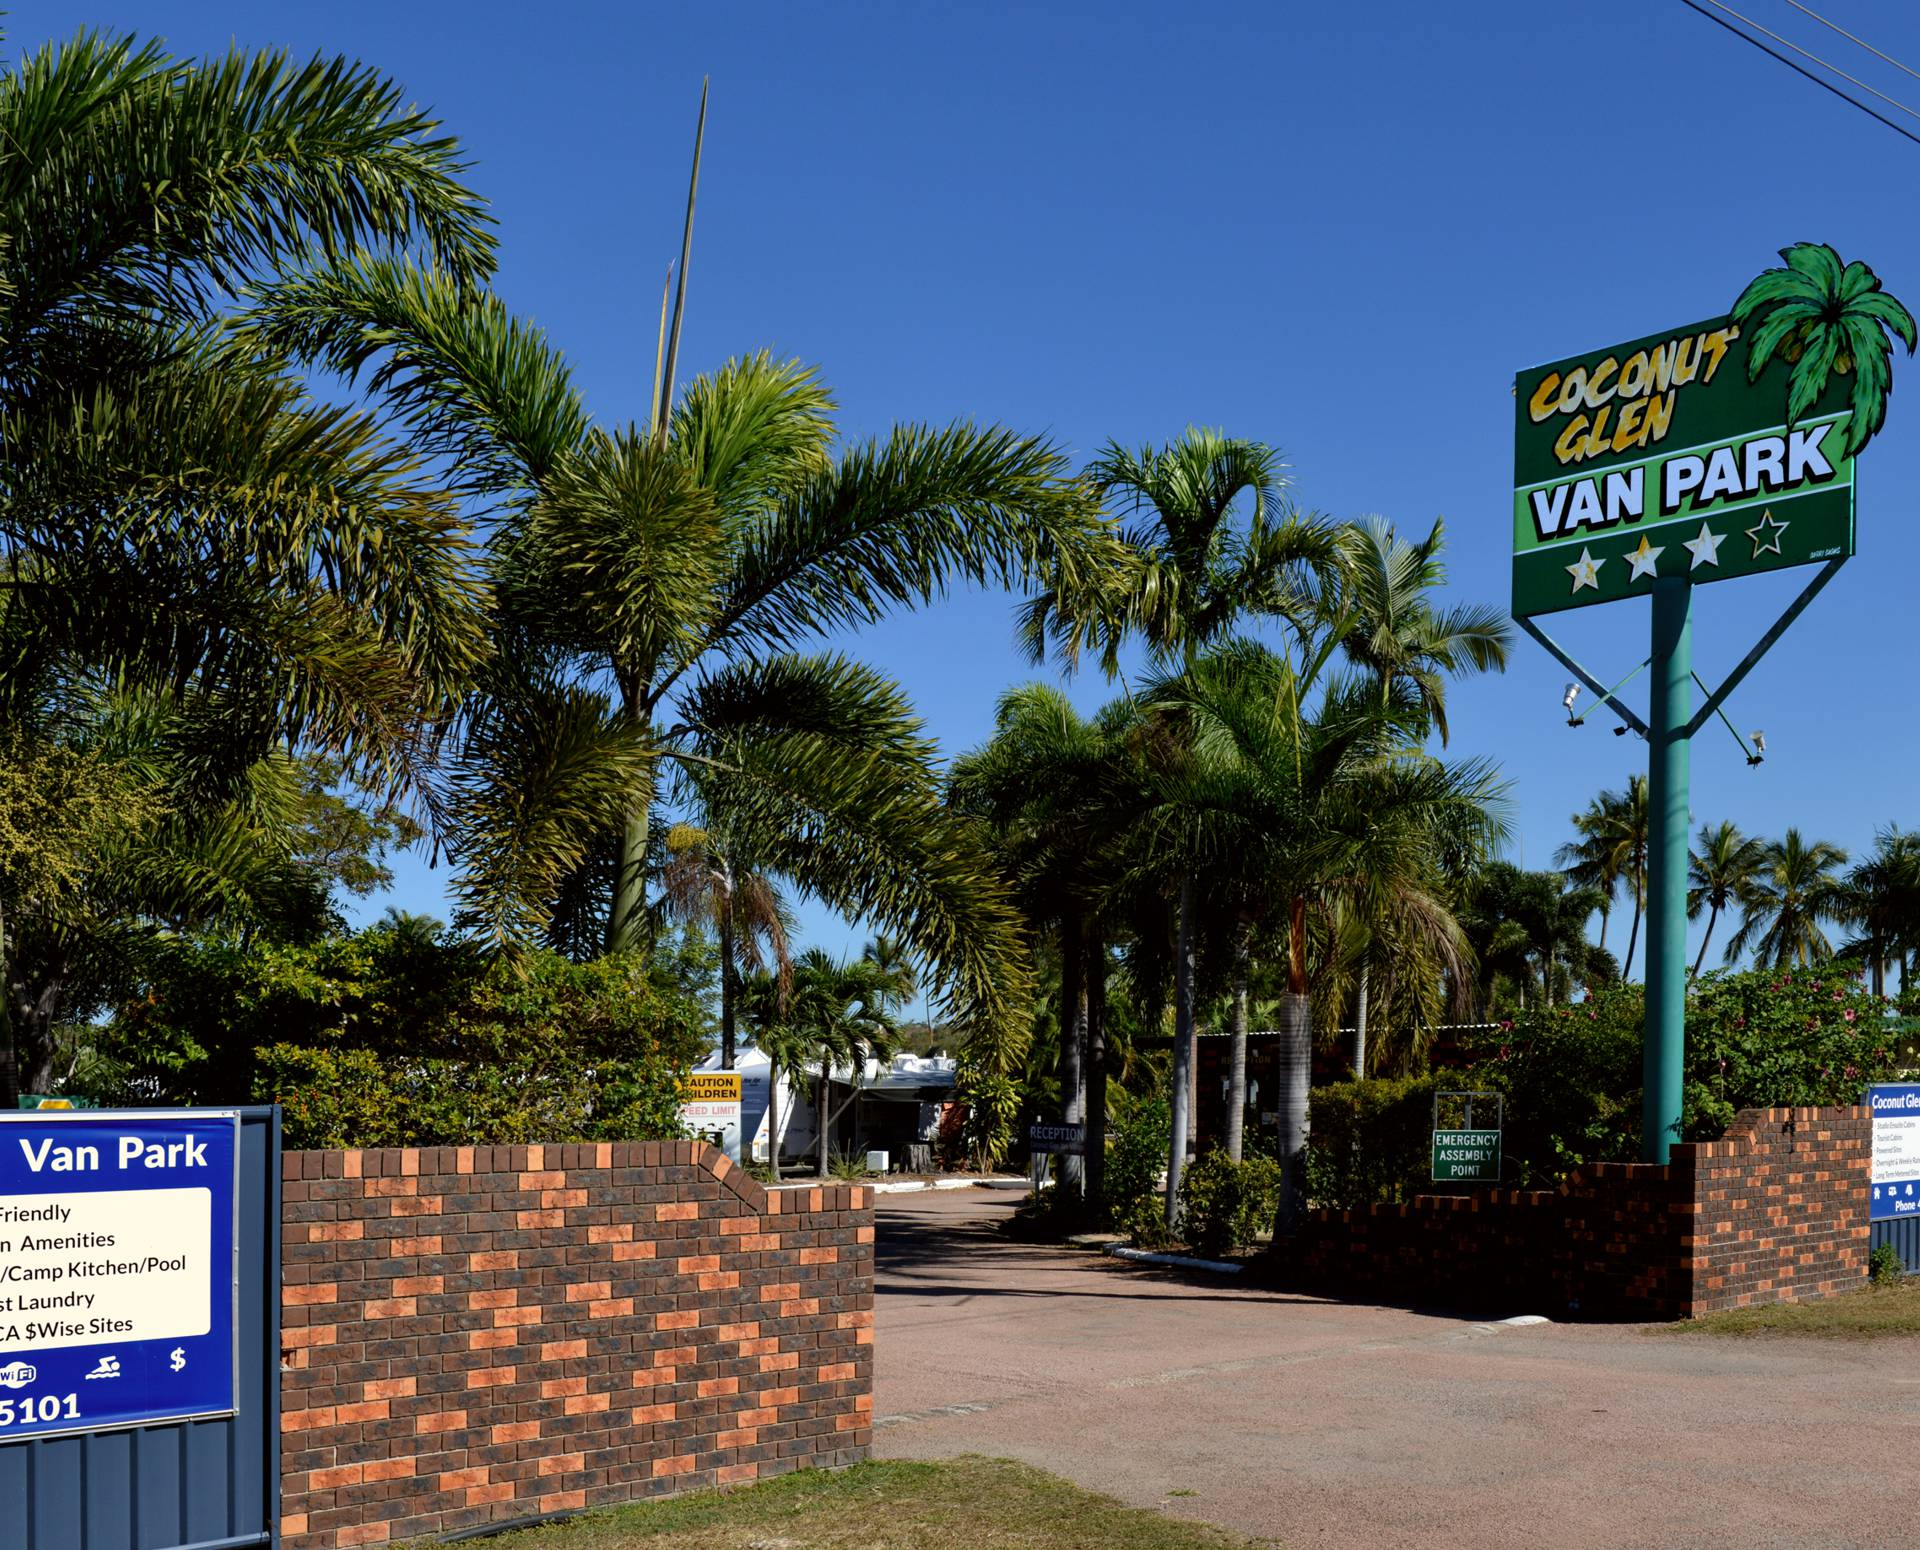 Coconut Glen Van Park - Townsville photo 1